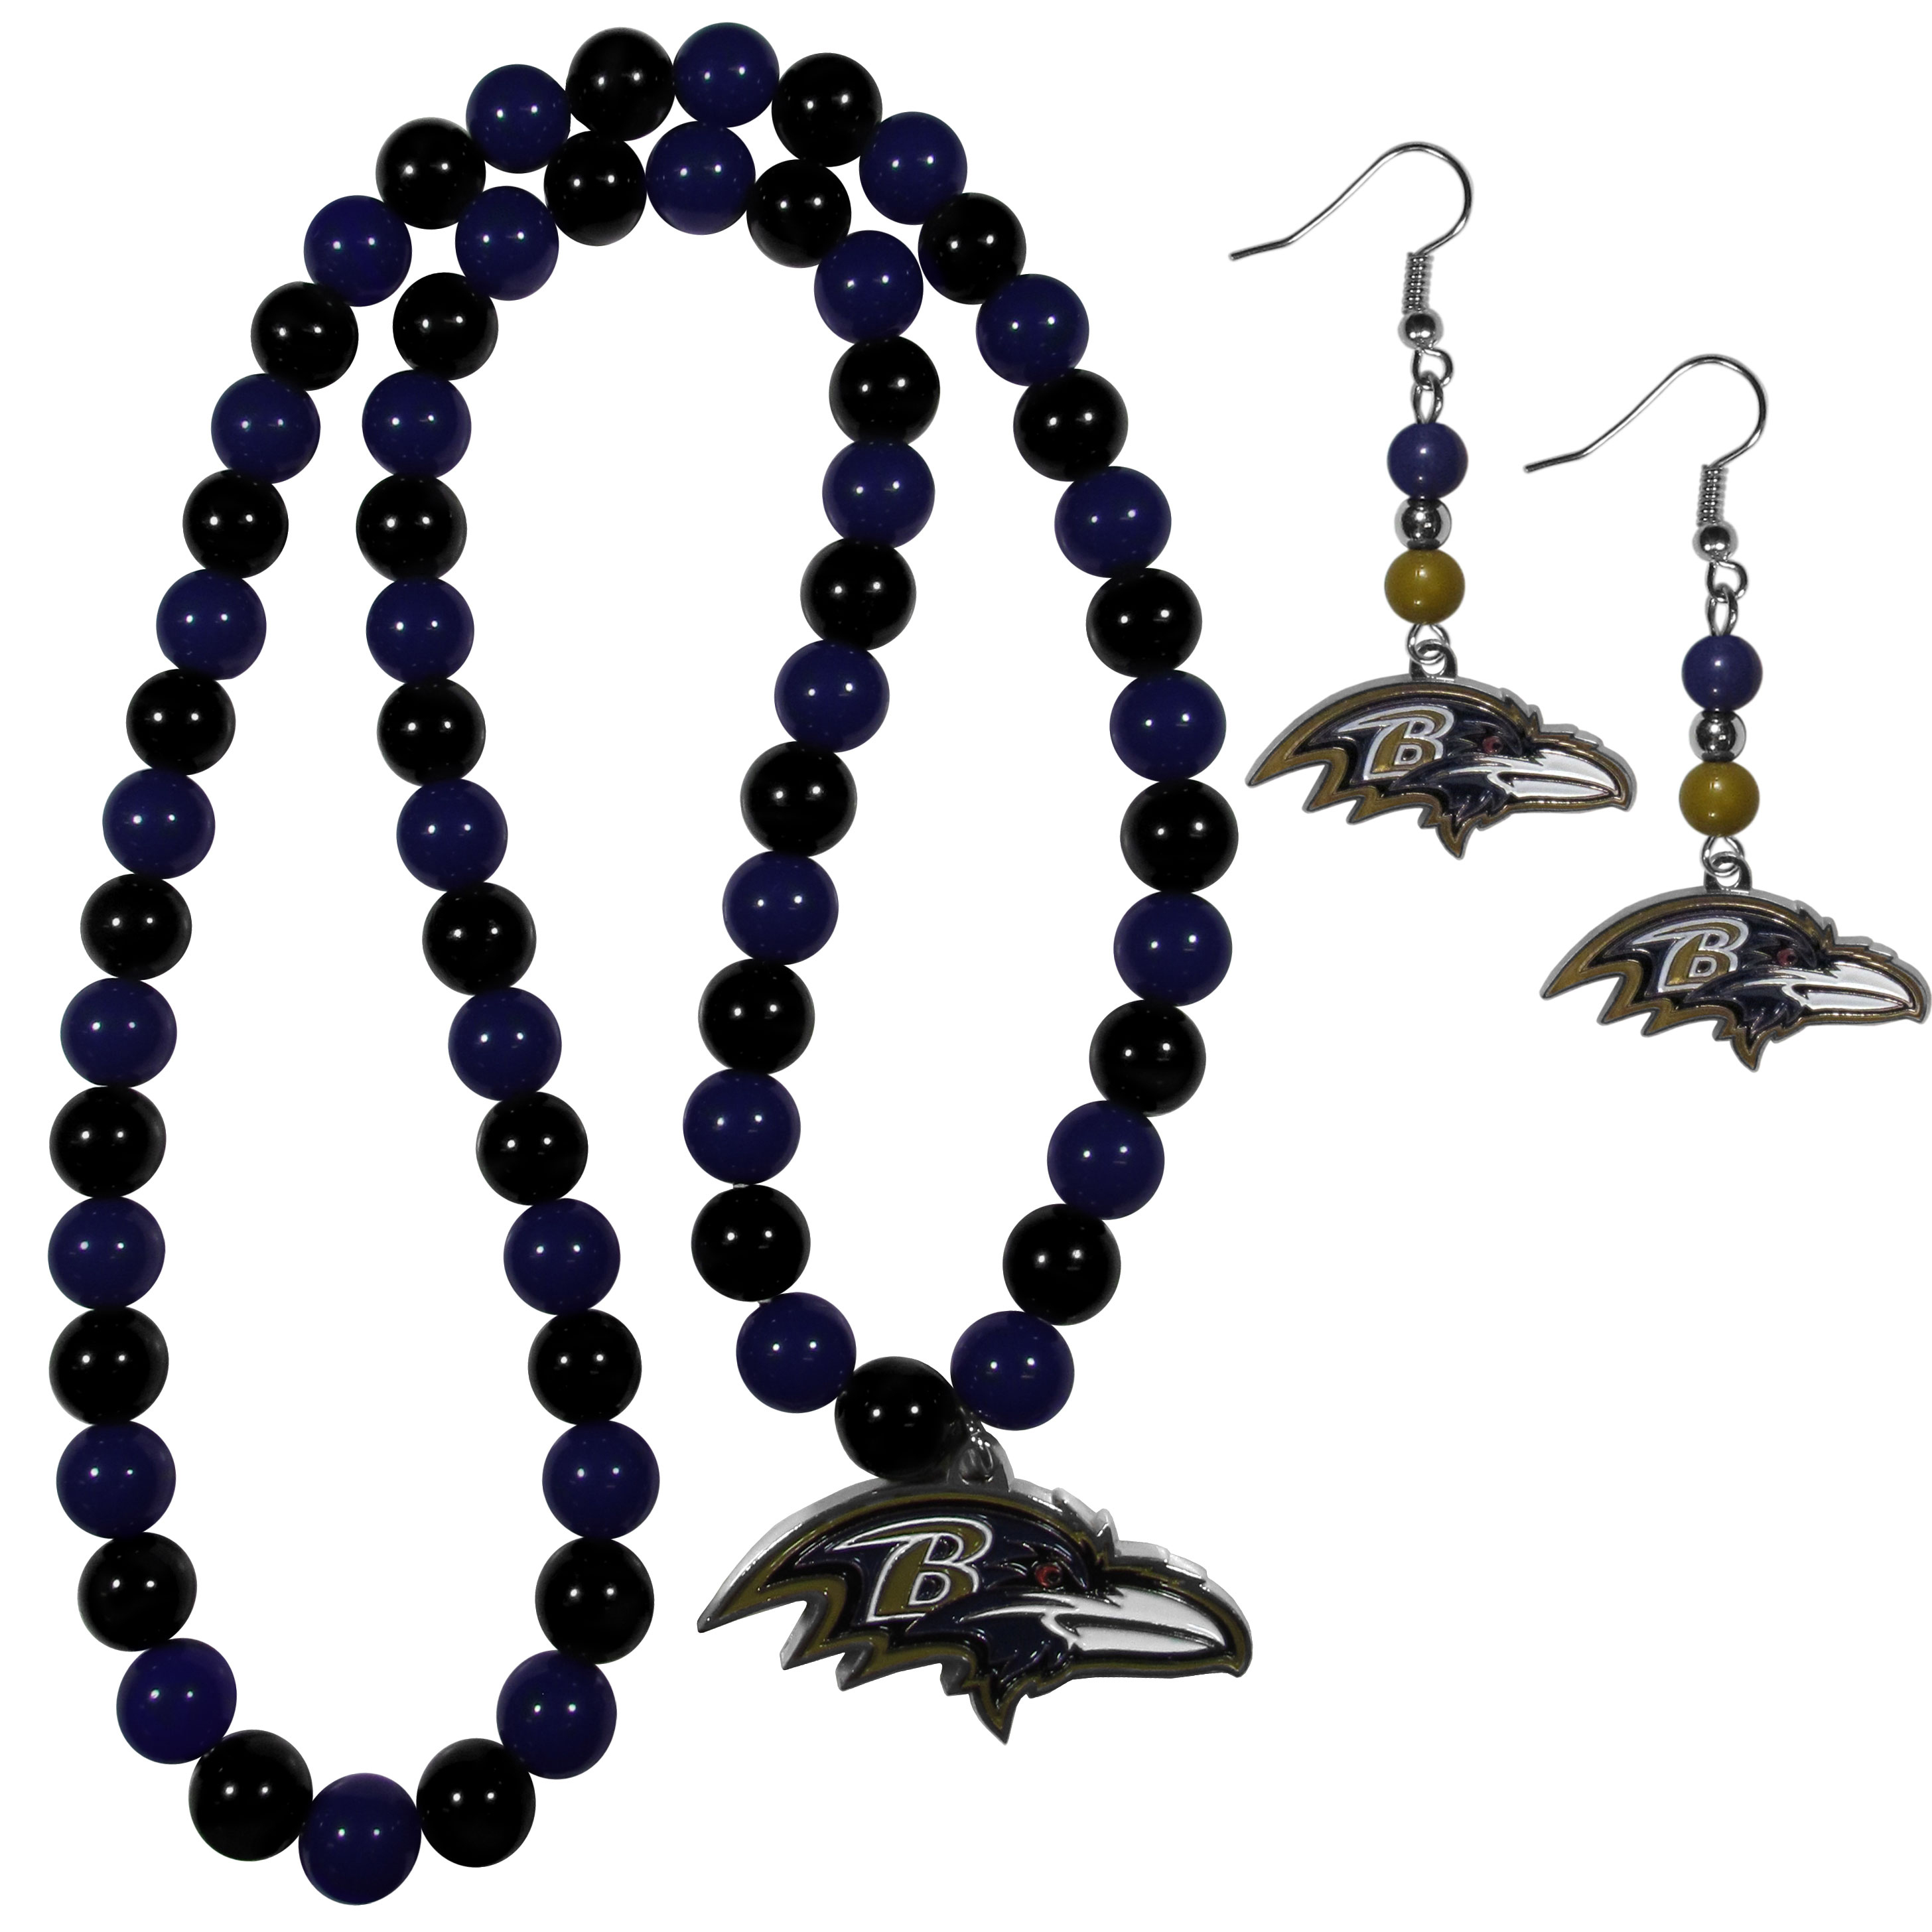 Baltimore Ravens Fan Bead Earrings and Necklace Set - These fun and colorful Baltimore Ravens fan bead jewelry pieces are an eyecatching way to show off your team spirit. The earrings feature hypoallergenic, nickel free fishhook post and 2 team colored beads with a beautifully carved team charm to finish this attractive dangle look. The mathcing bracelet has alternating team colored beads on a stretch cord and features a matching team charm.